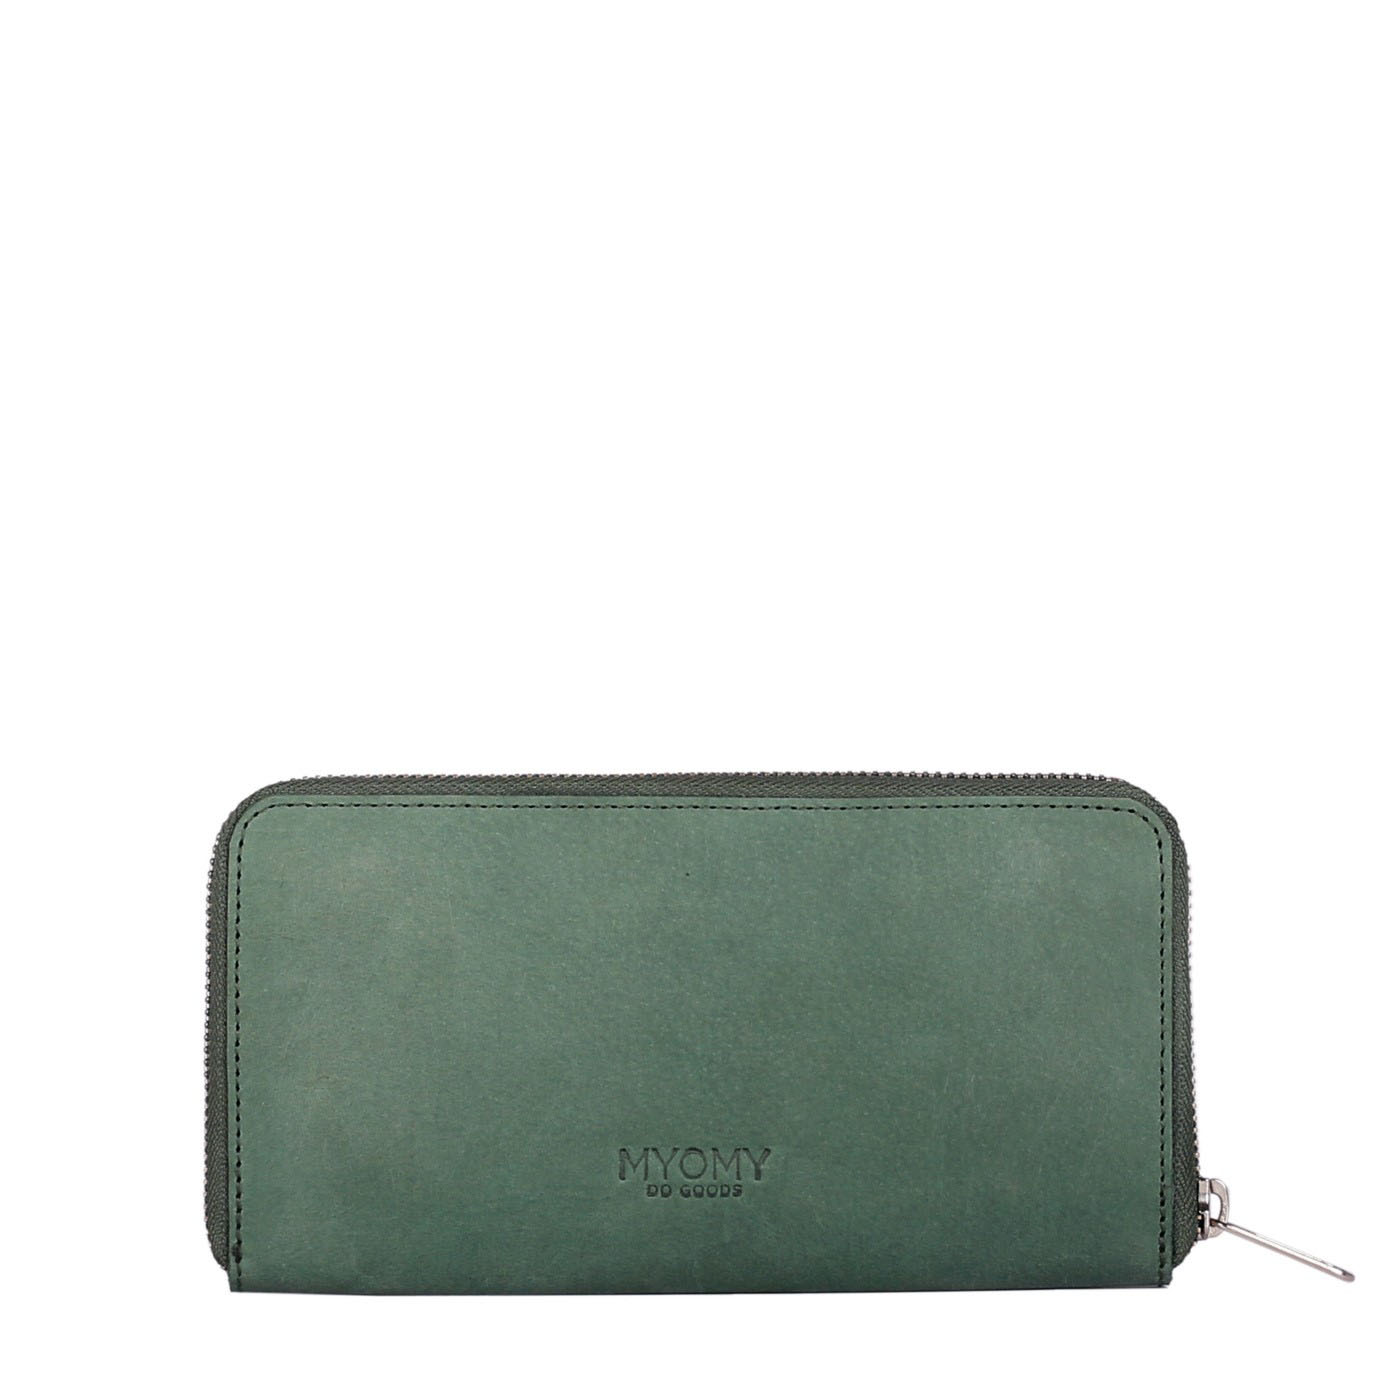 MY PAPER BAG Wallet - hunter forest green